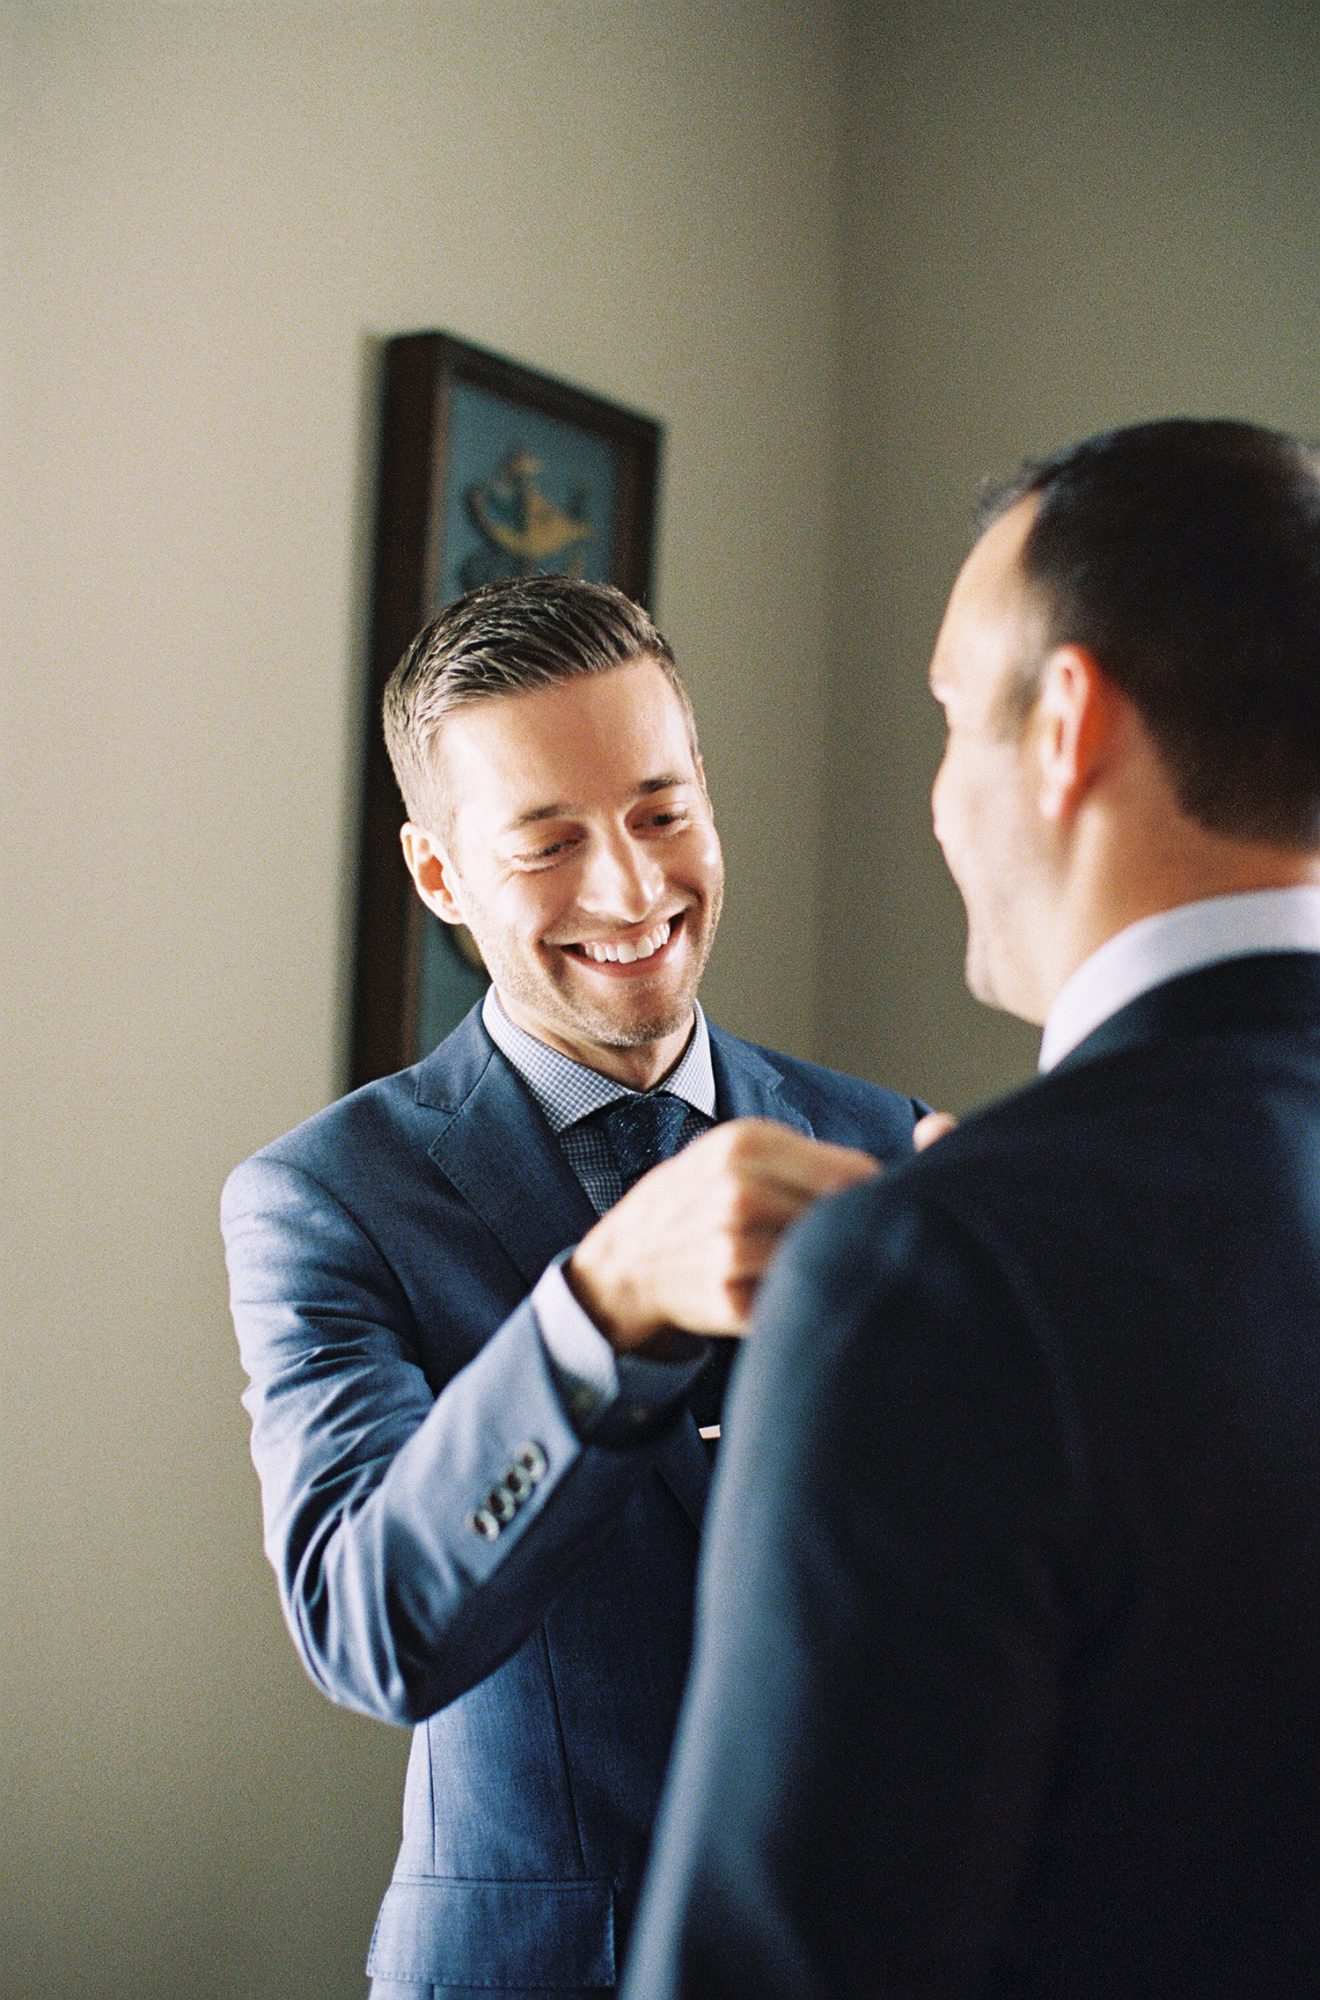 This groom couldn't help but smile with excitement as he and his future spouse got dressed for their wedding.